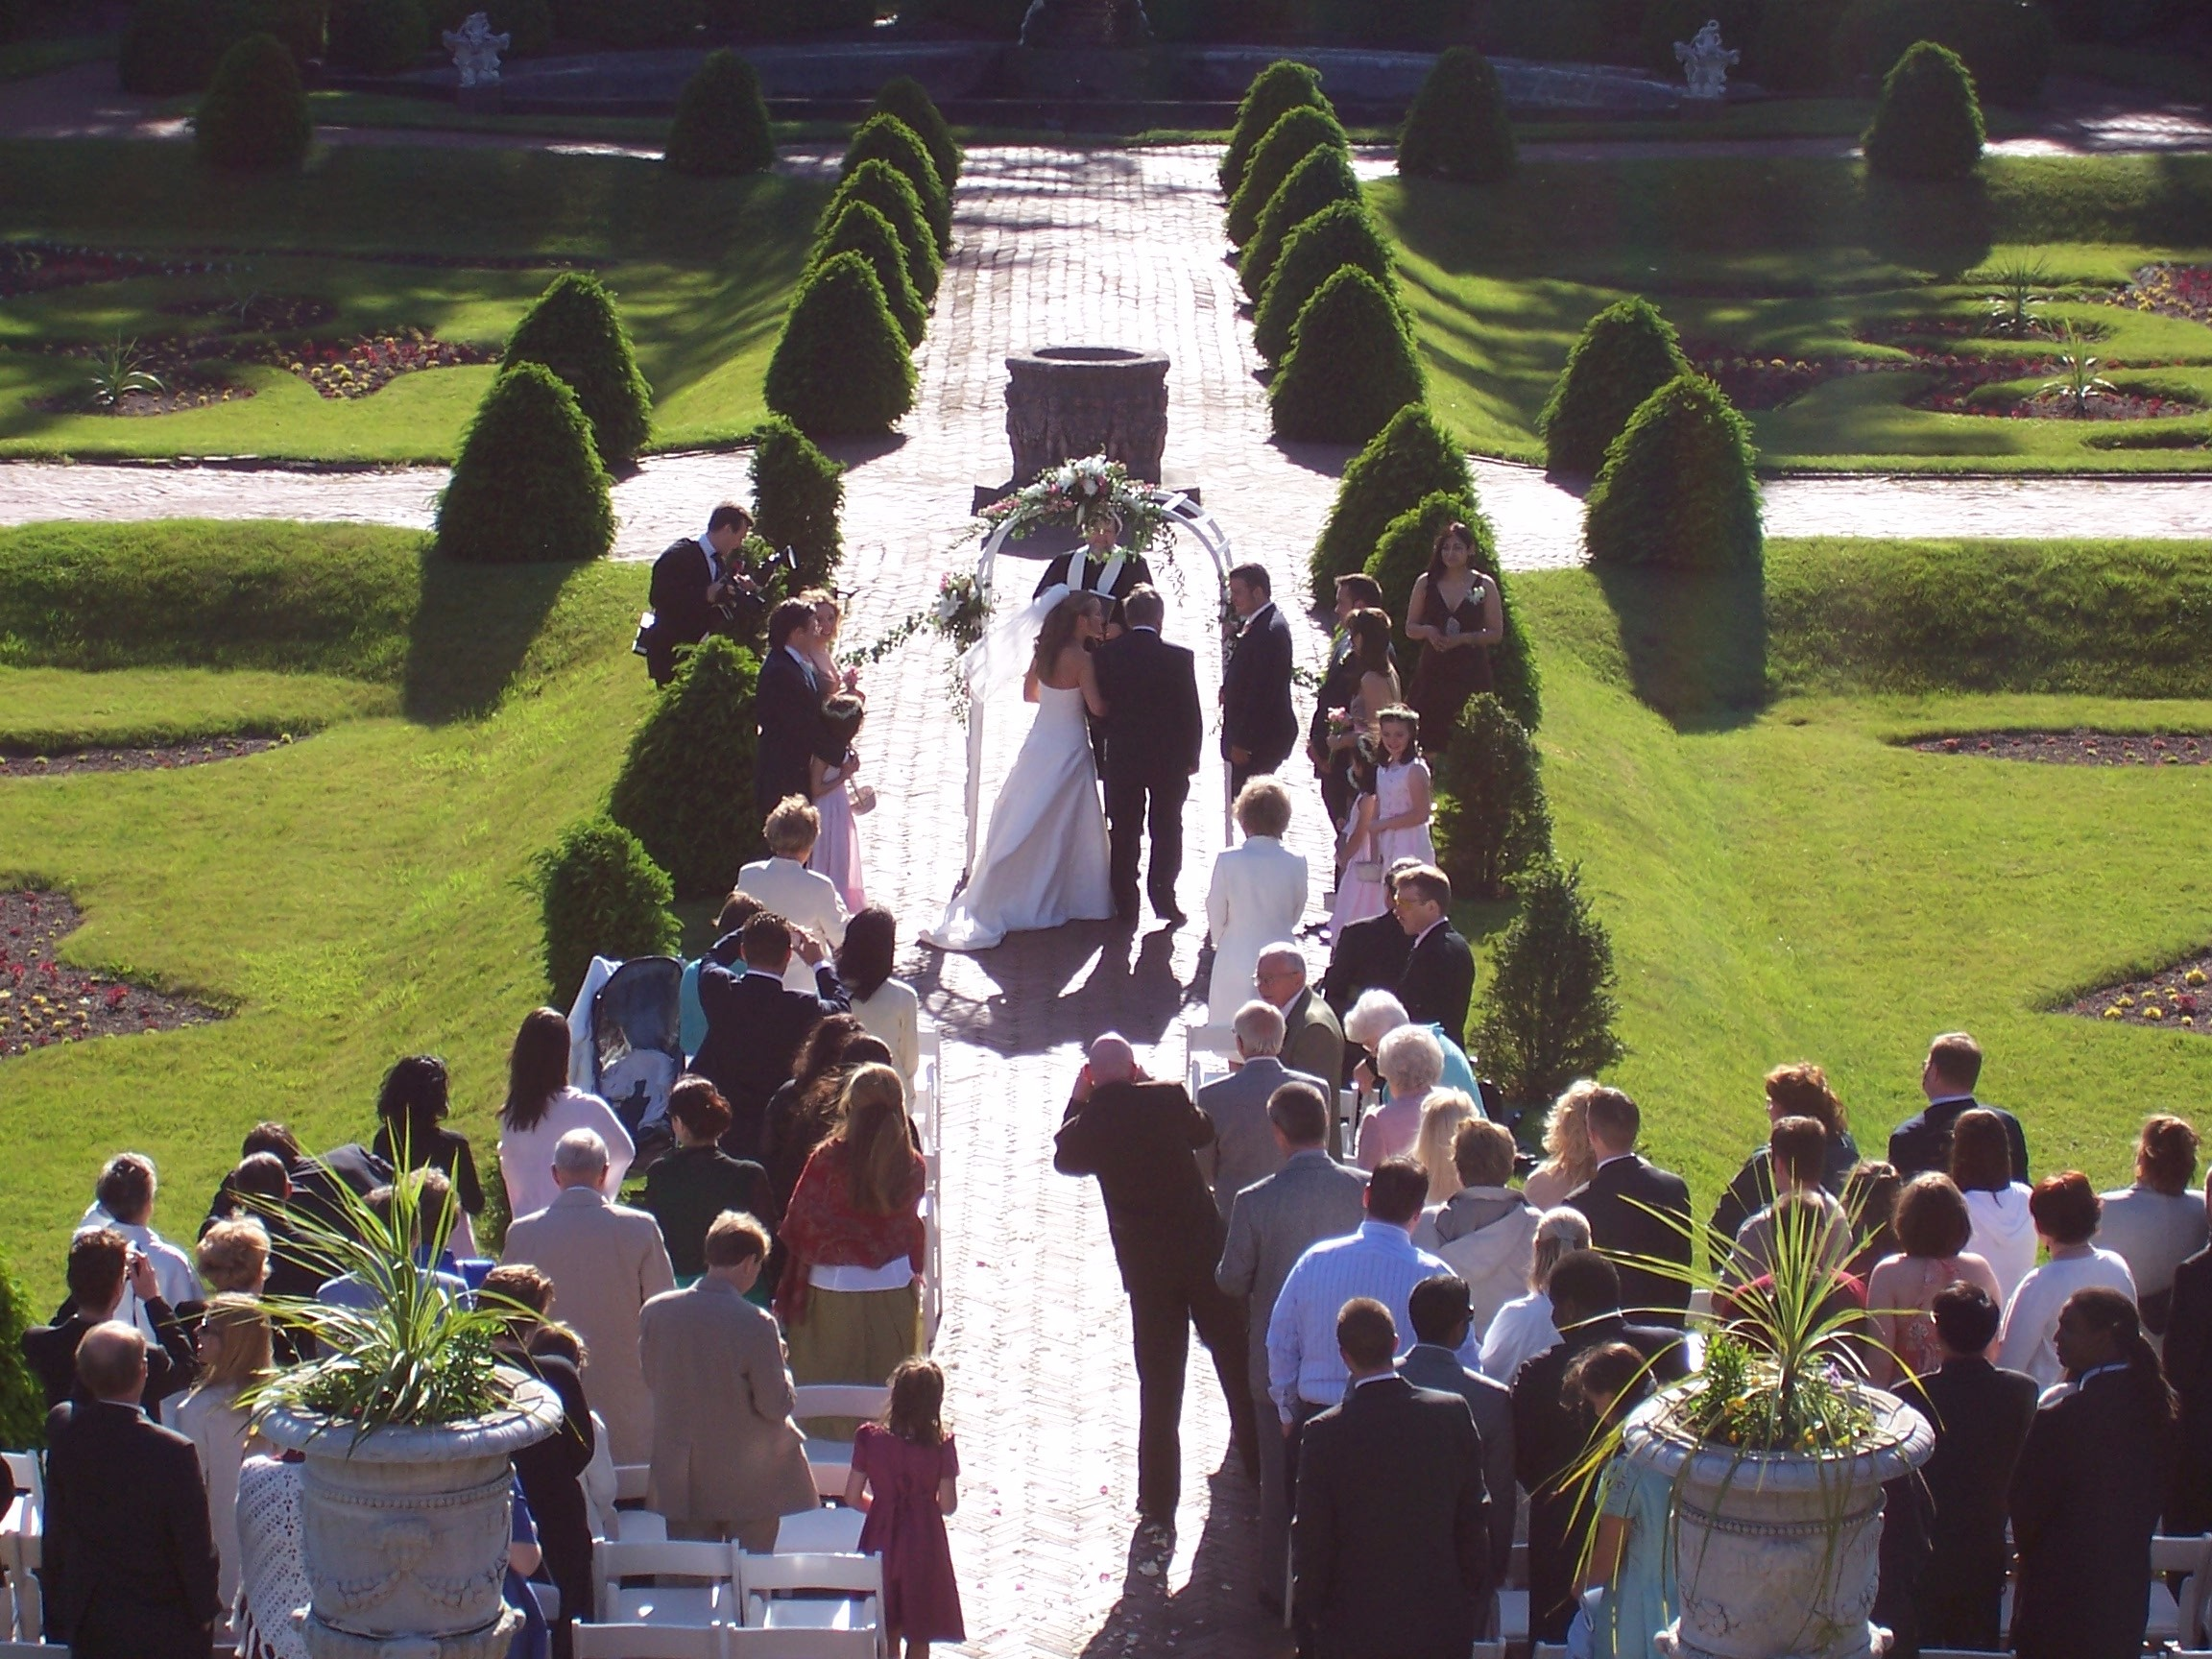 italien-garden-wedding-ceremony_6685018173_o